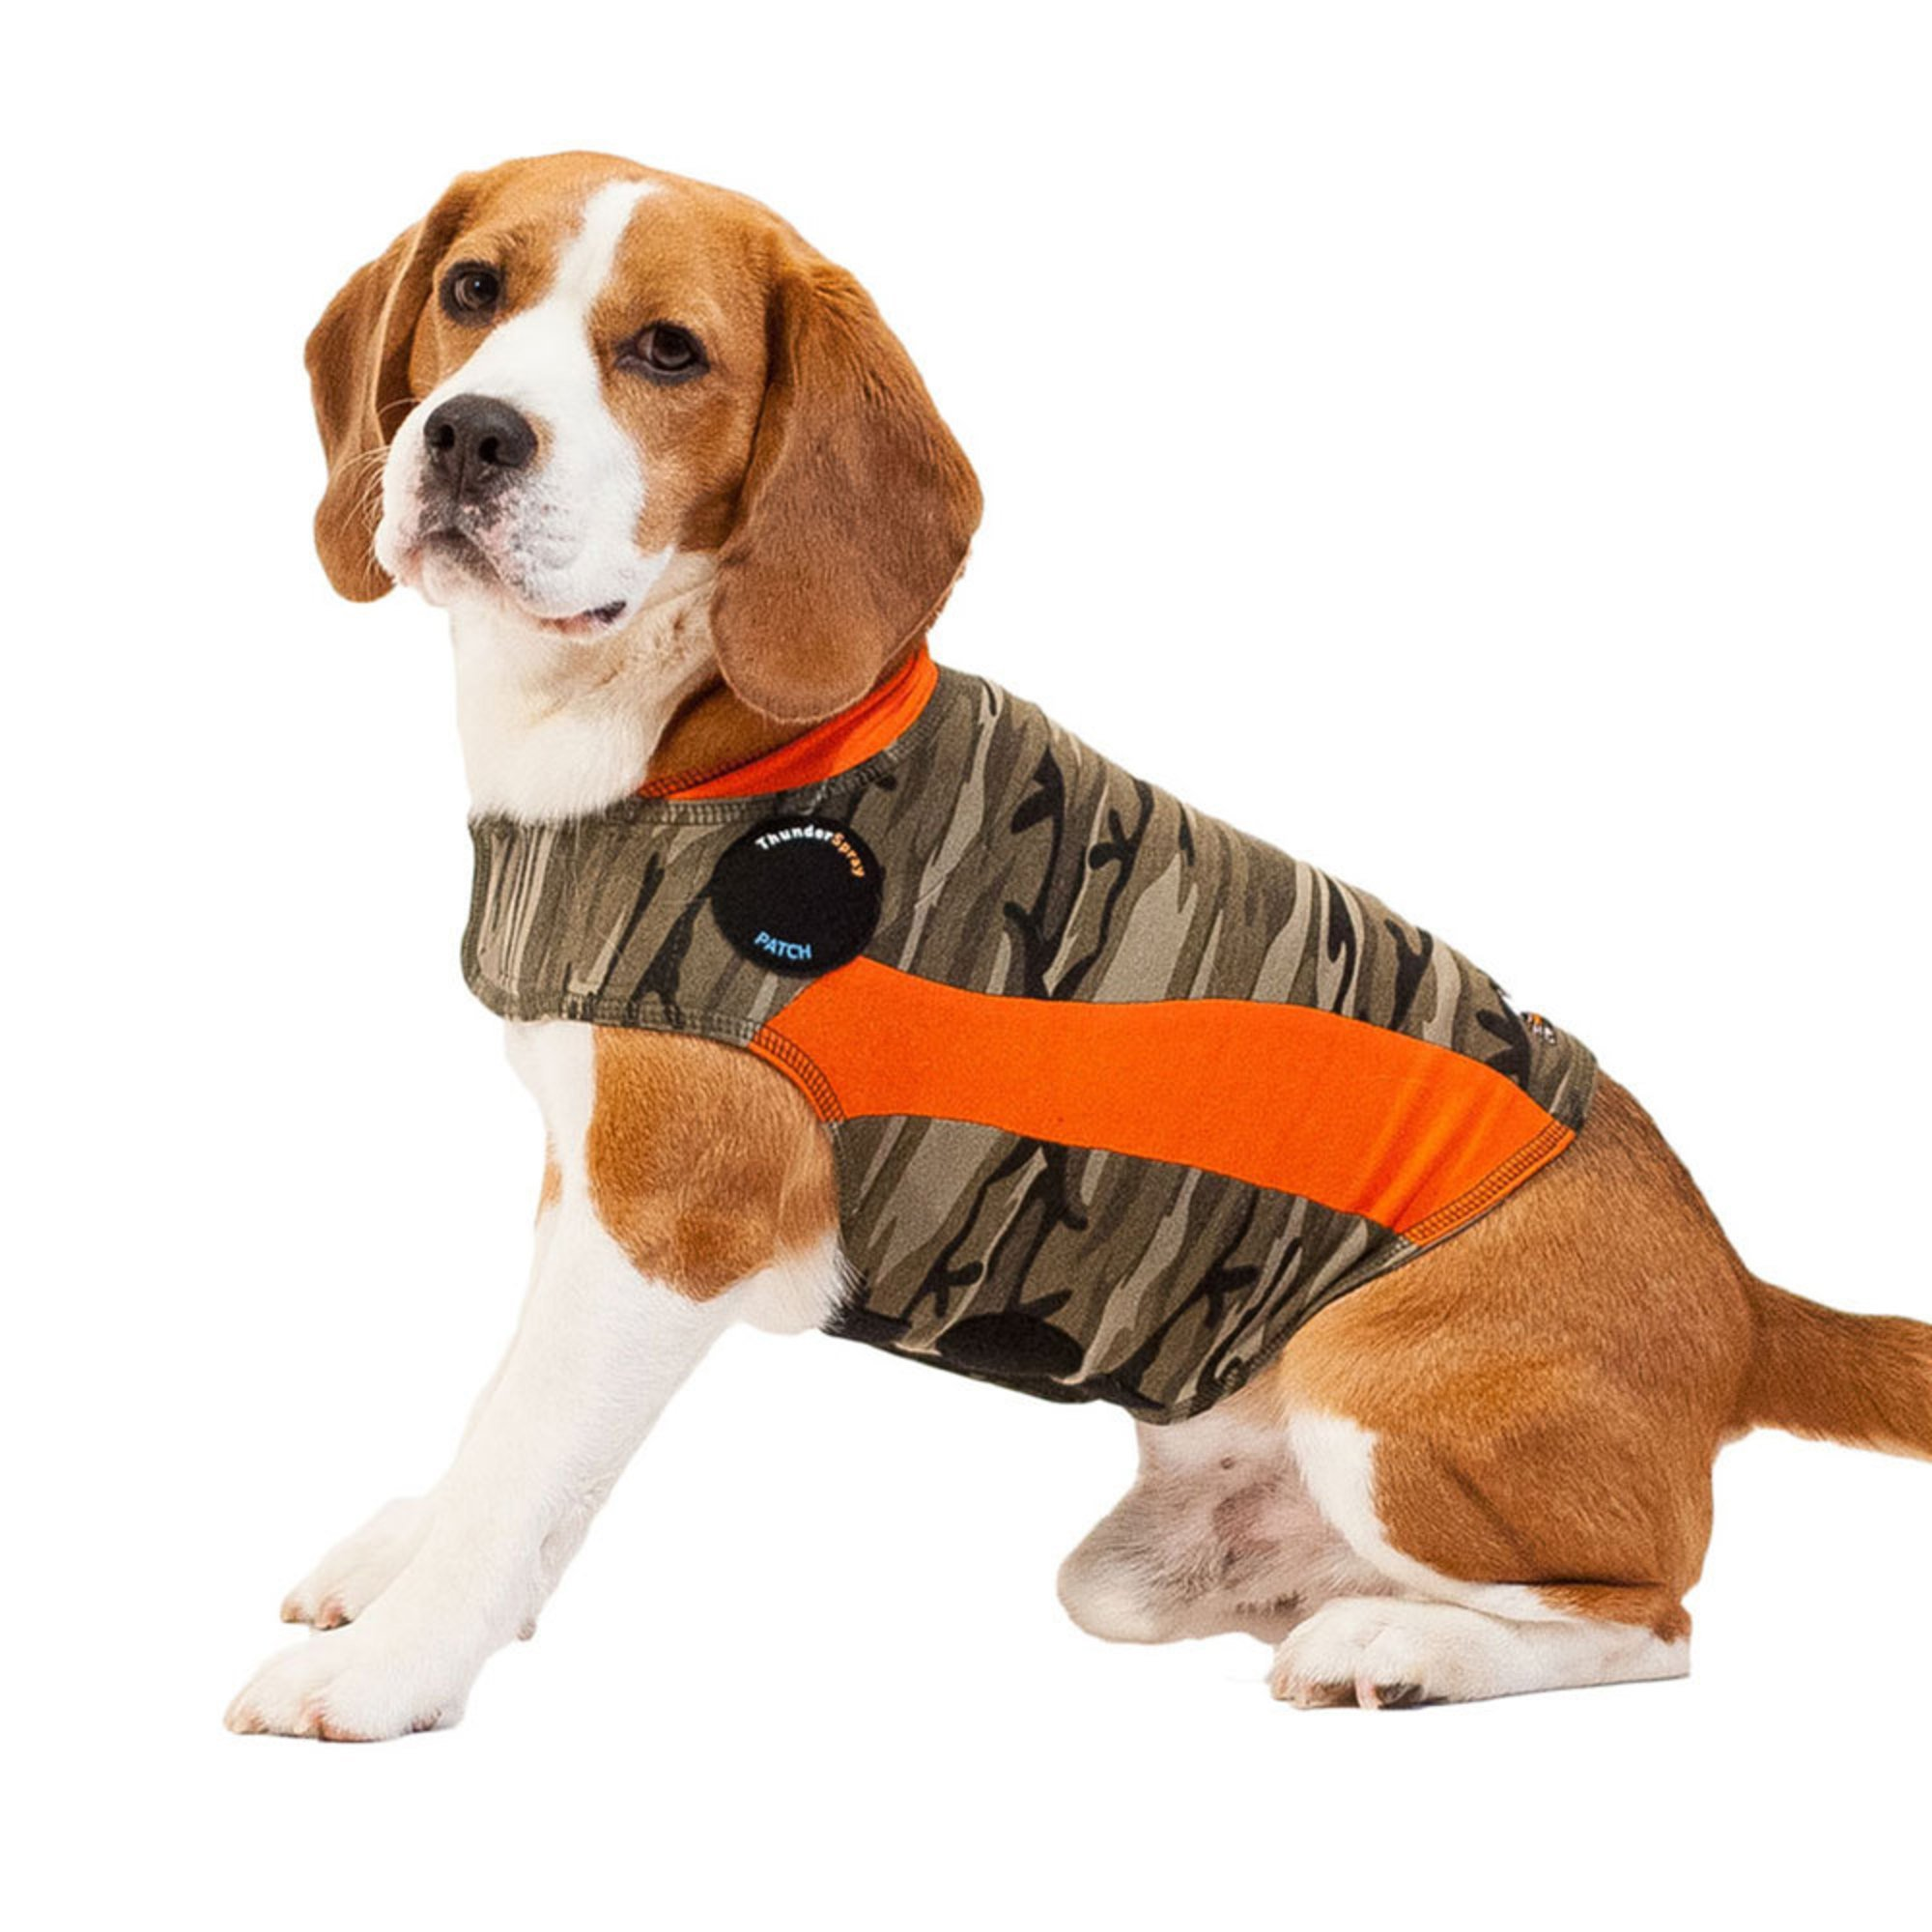 I have not seen the Thundershirt provide any reduction in anxious behavior whatsoever in the dogs I have seen it used on. The Thundershirt fits like a regular dog coat and may provide some relief because of the ability to adjust the tightness of the fit with the velcro closures.